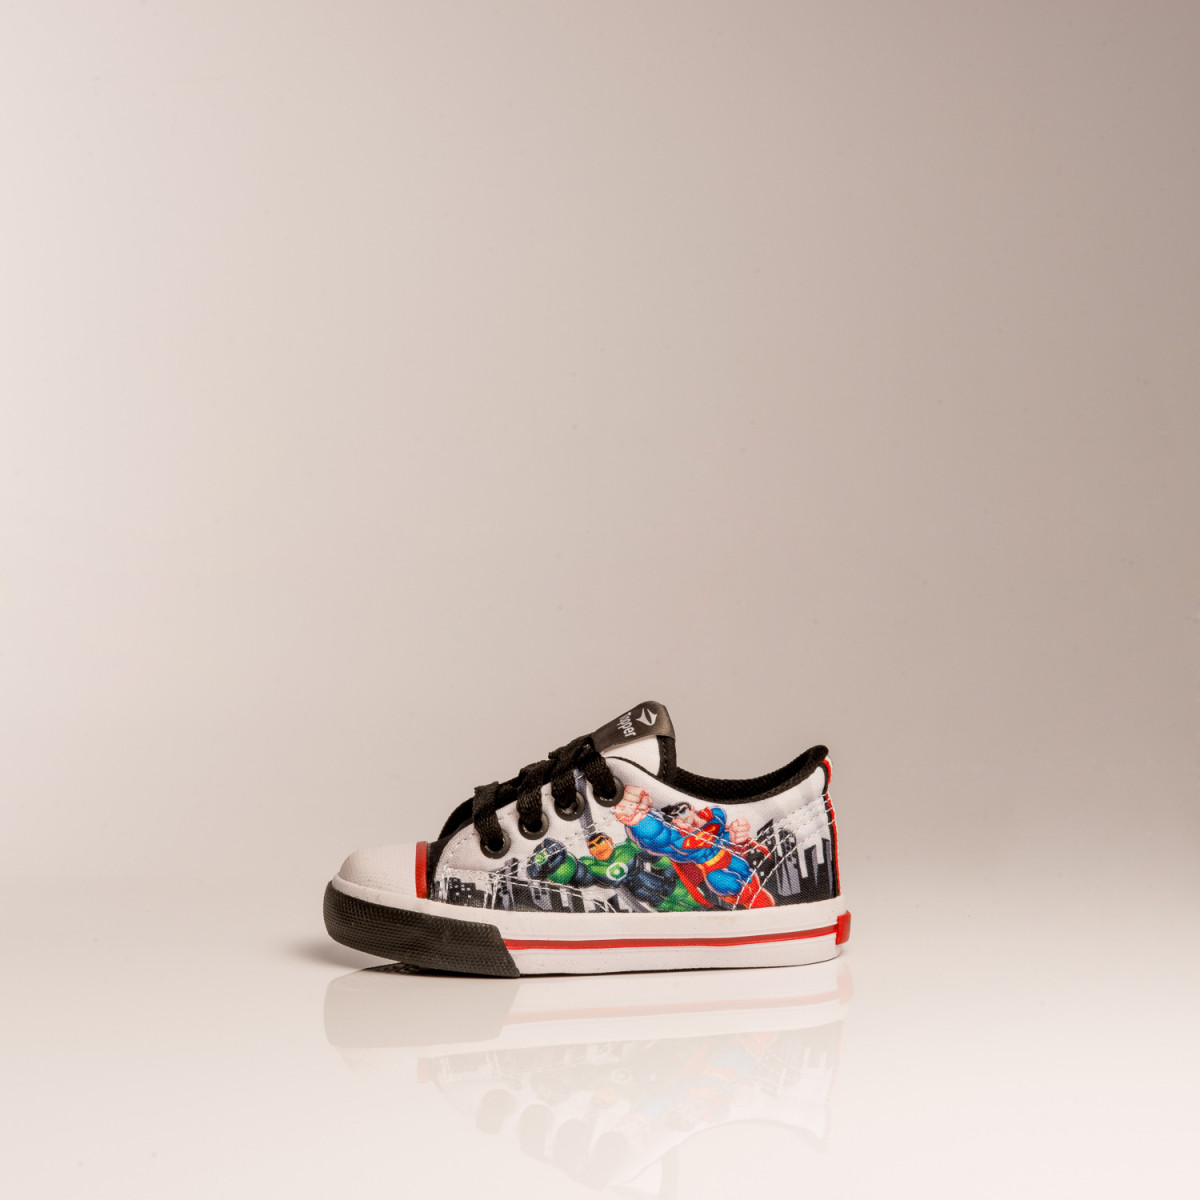 ZAPATILLAS TOPPER COMICS PROF BB SUPER AMIGOS